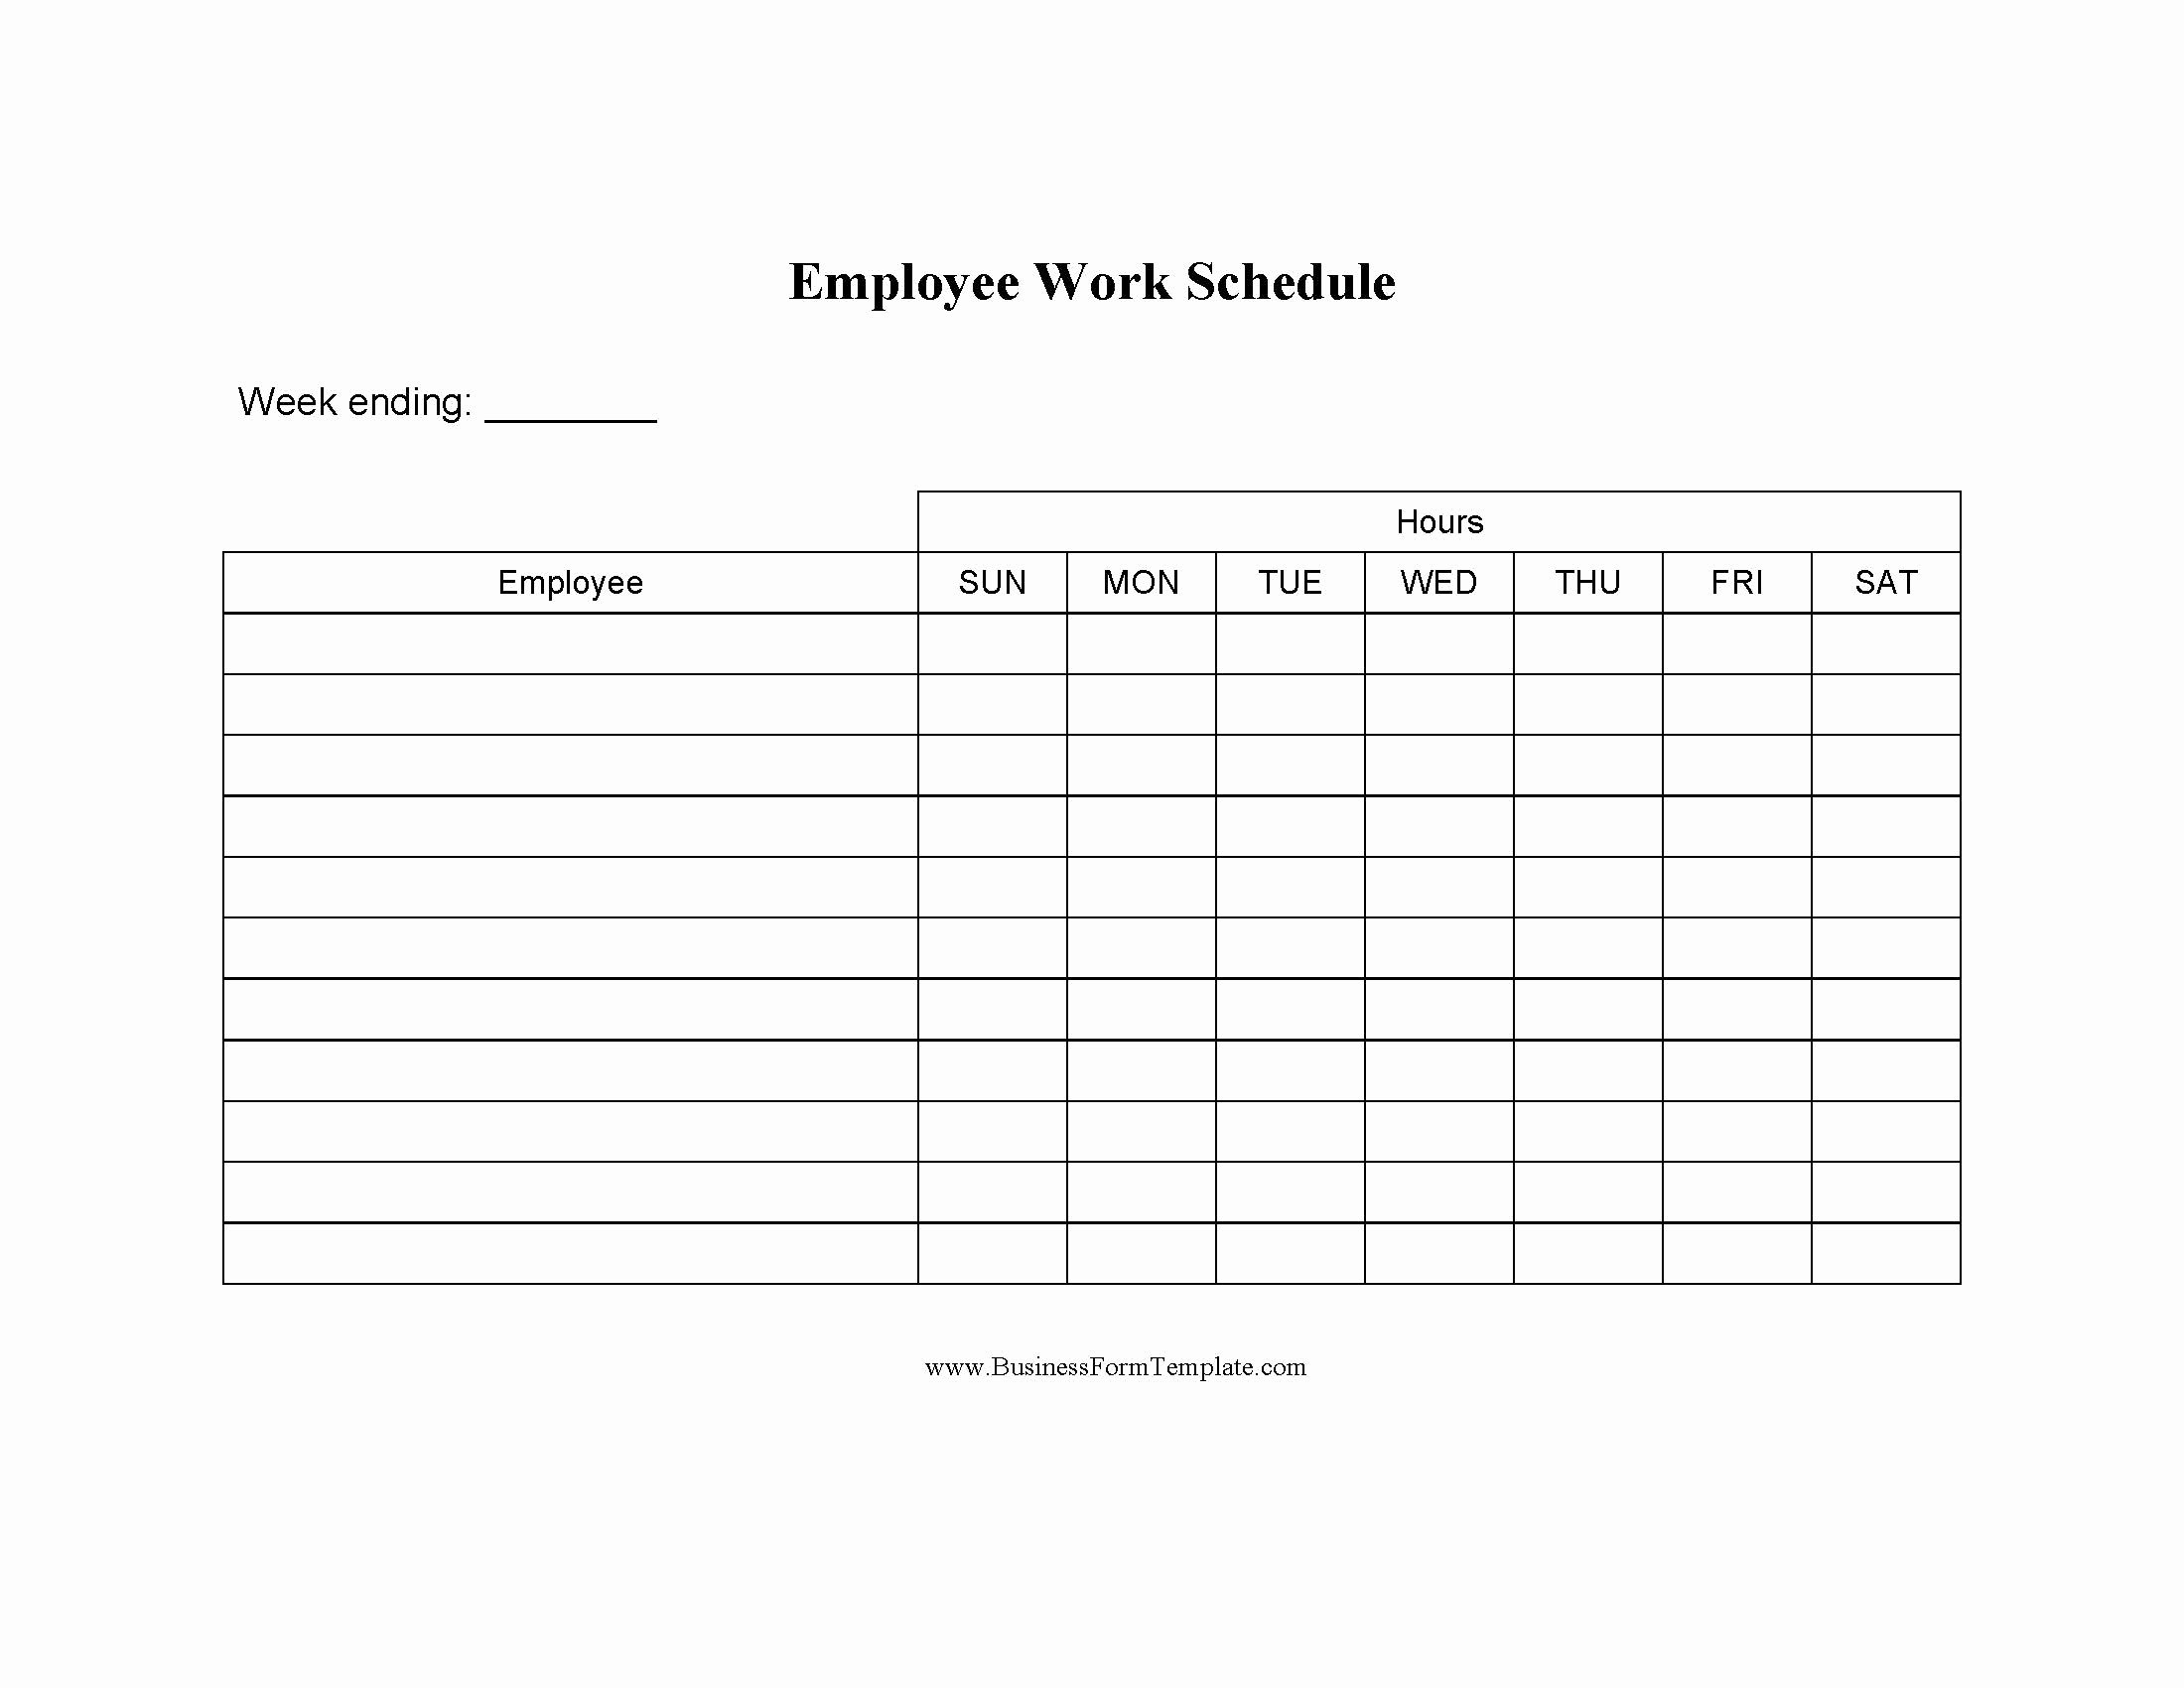 Employee Work Schedule Template Pdf Beautiful Blank Employee Daily Work Schedule Template Word Doc Pdf